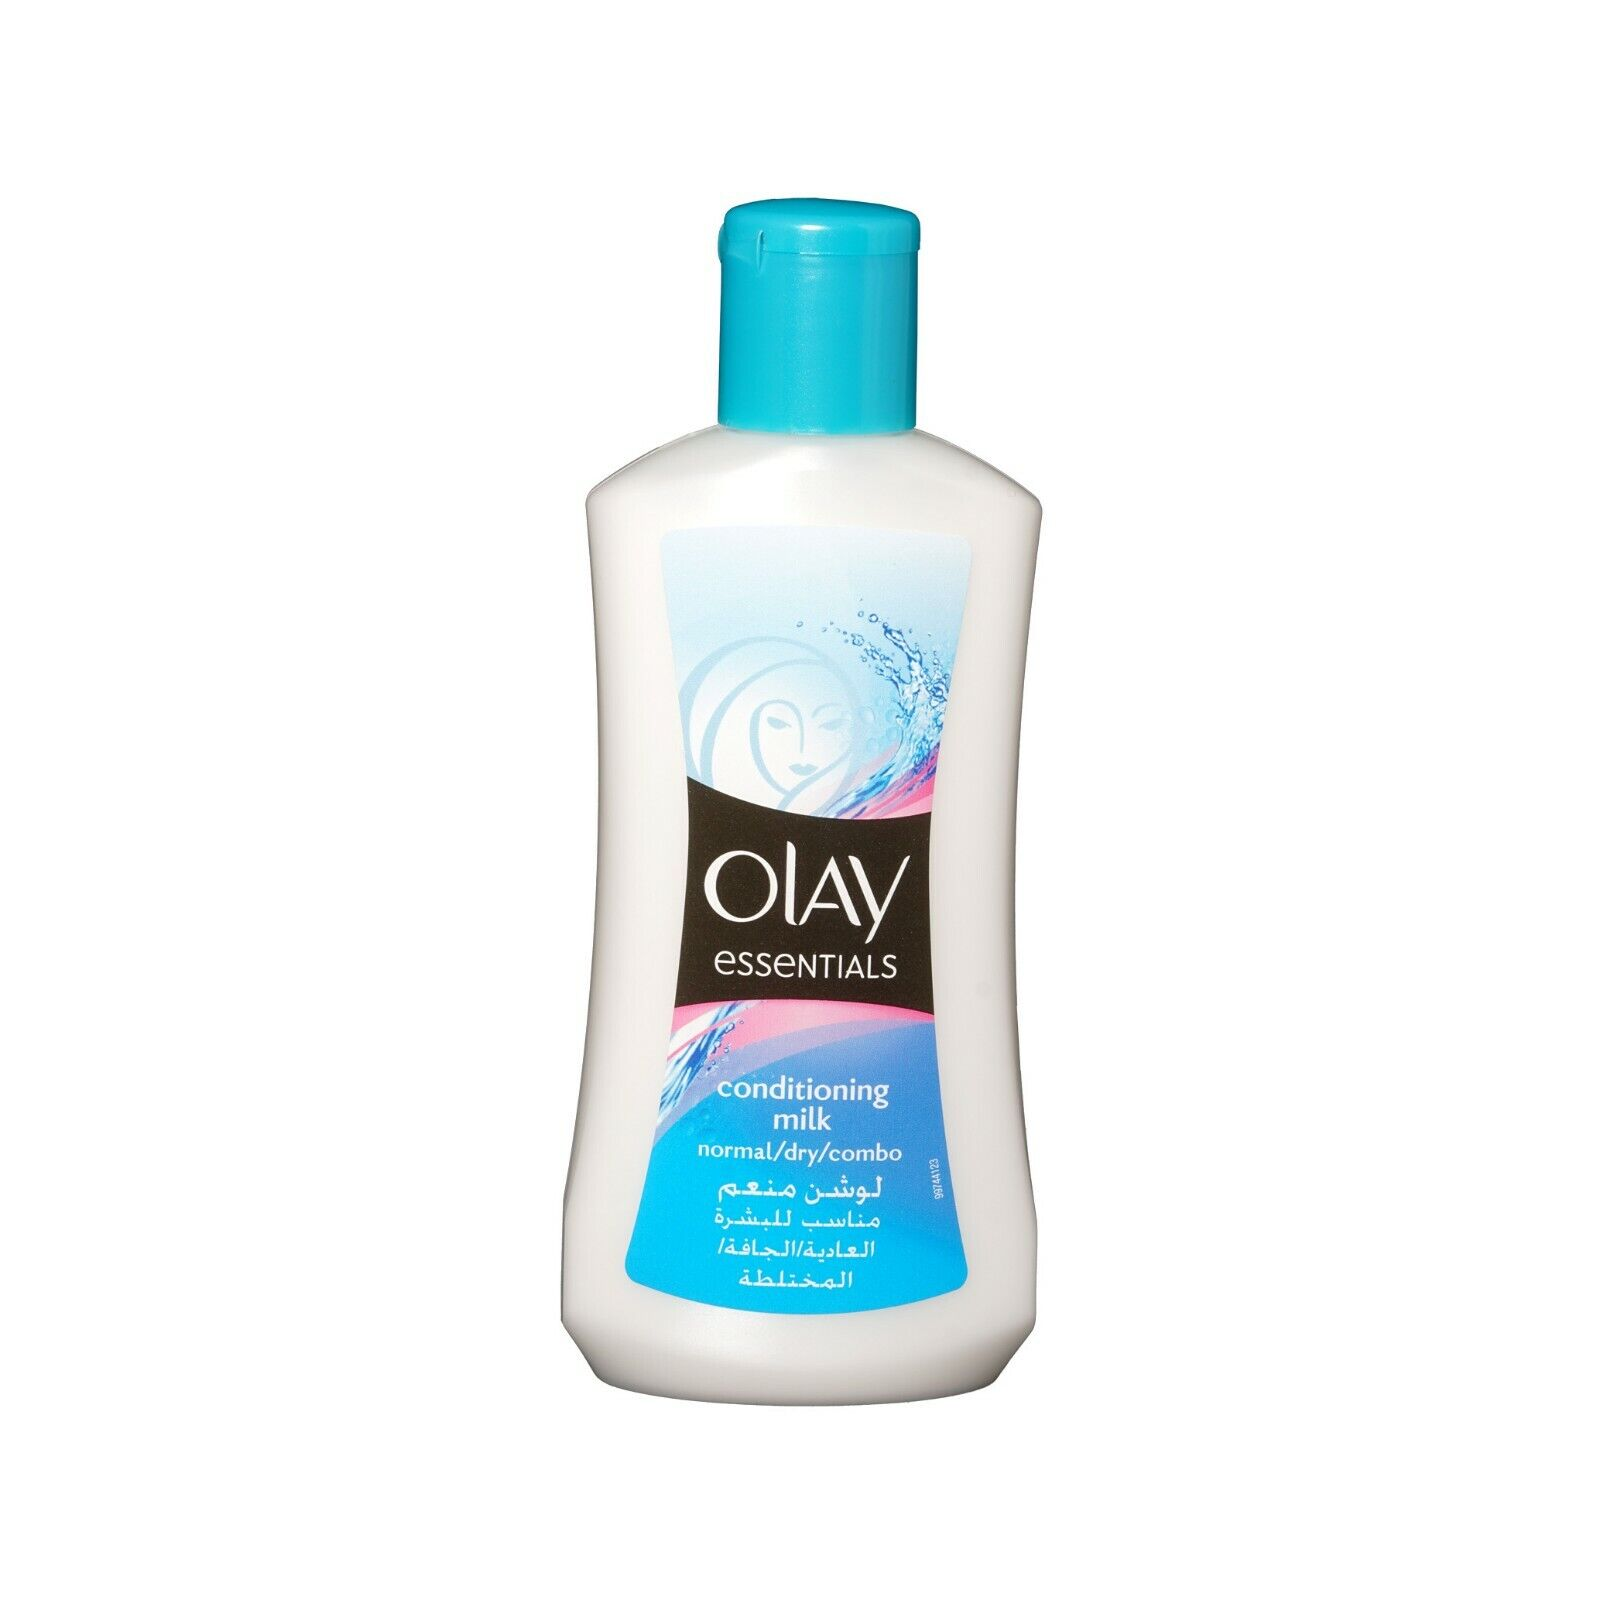 Olay Essentials Conditioning Milk Cleanser Normal/Dry/Combo Skin - 200ml